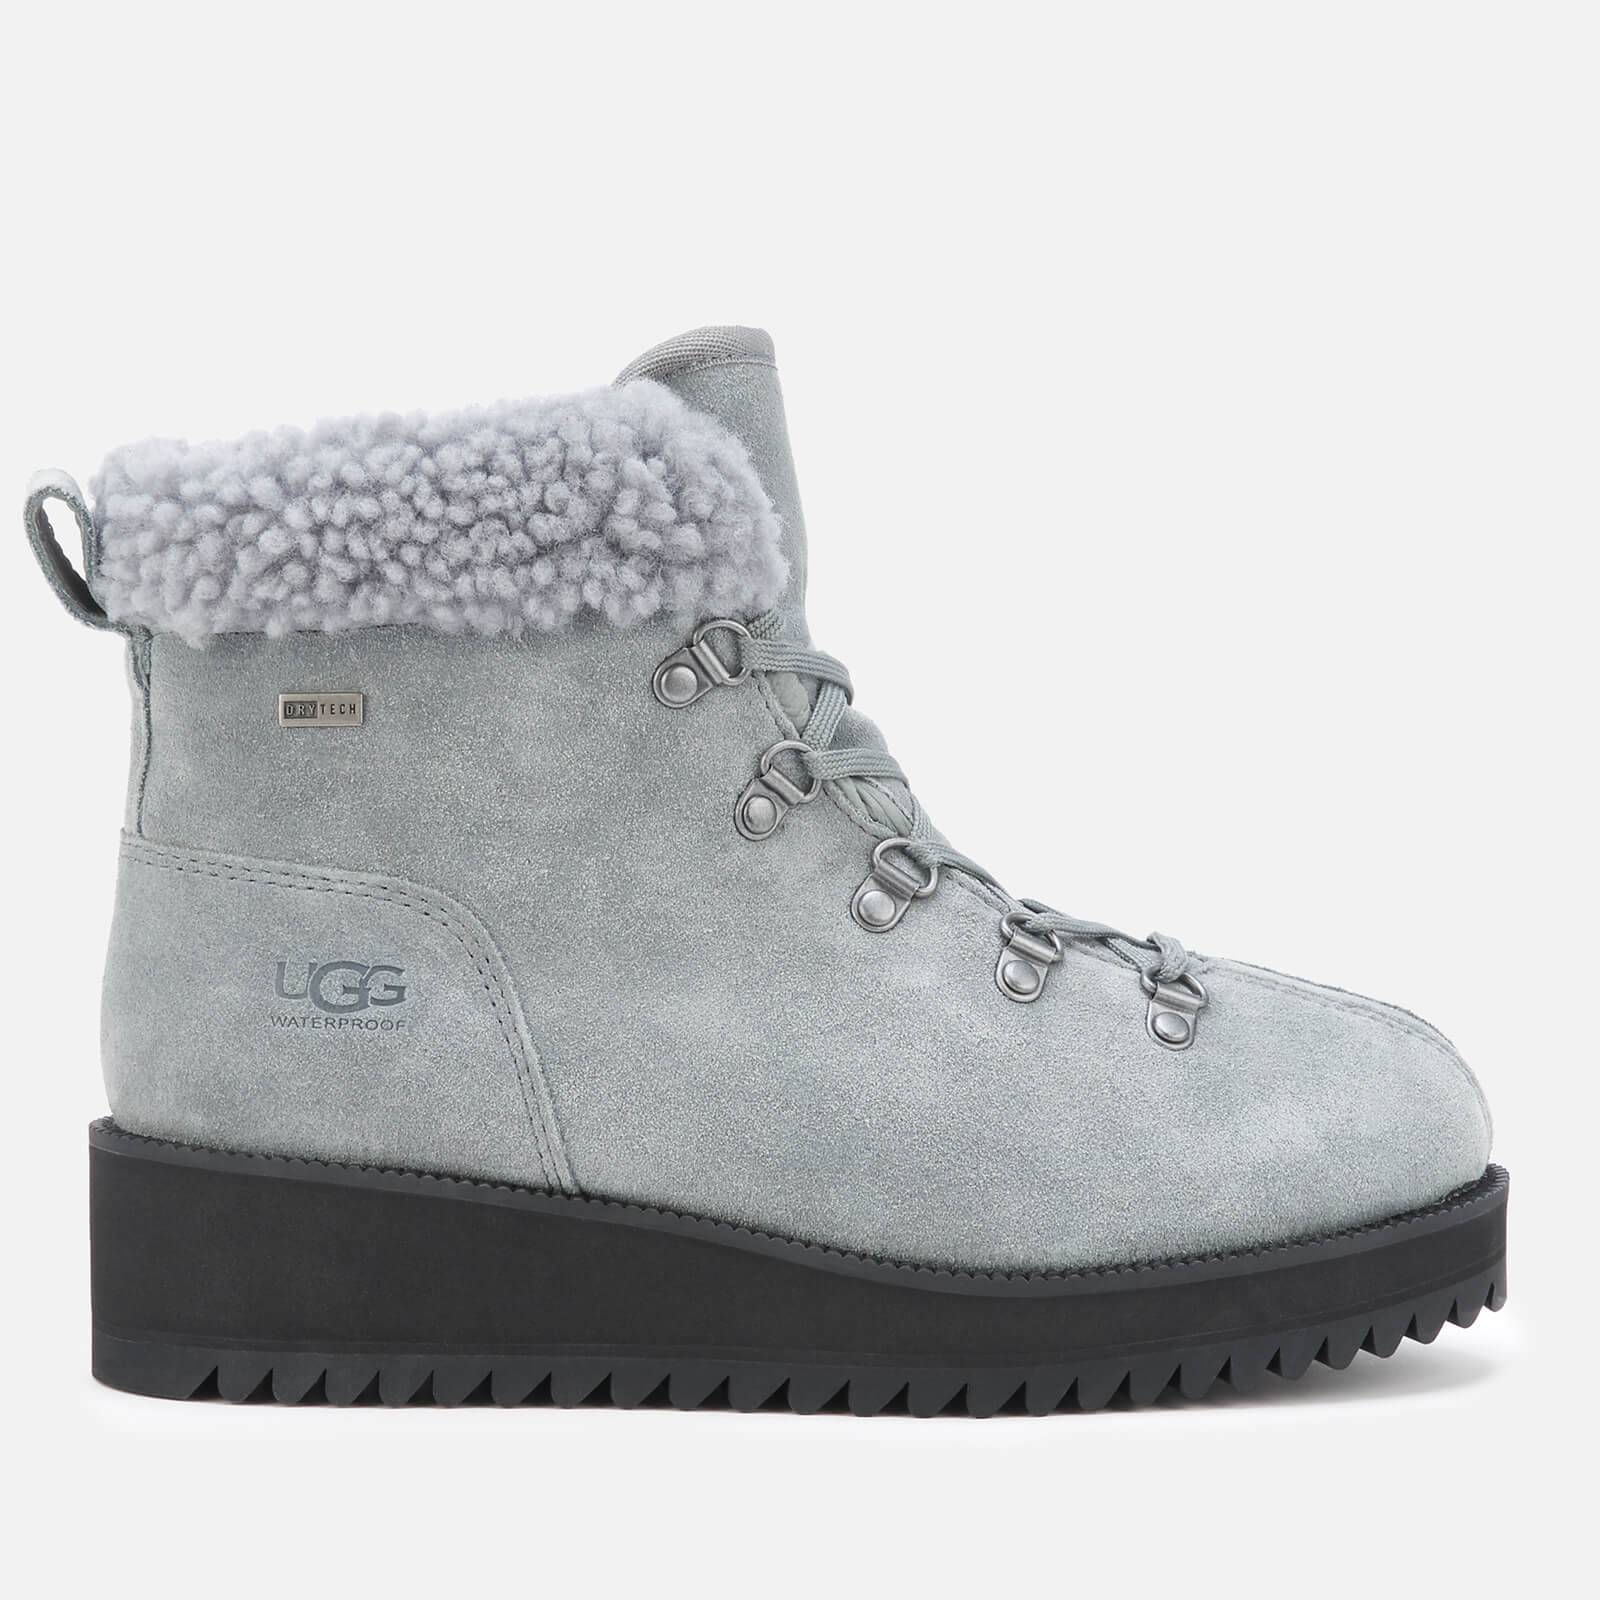 UGG Women's Birch Lace up Shearling Hiker Boots - Geyser - UK 8